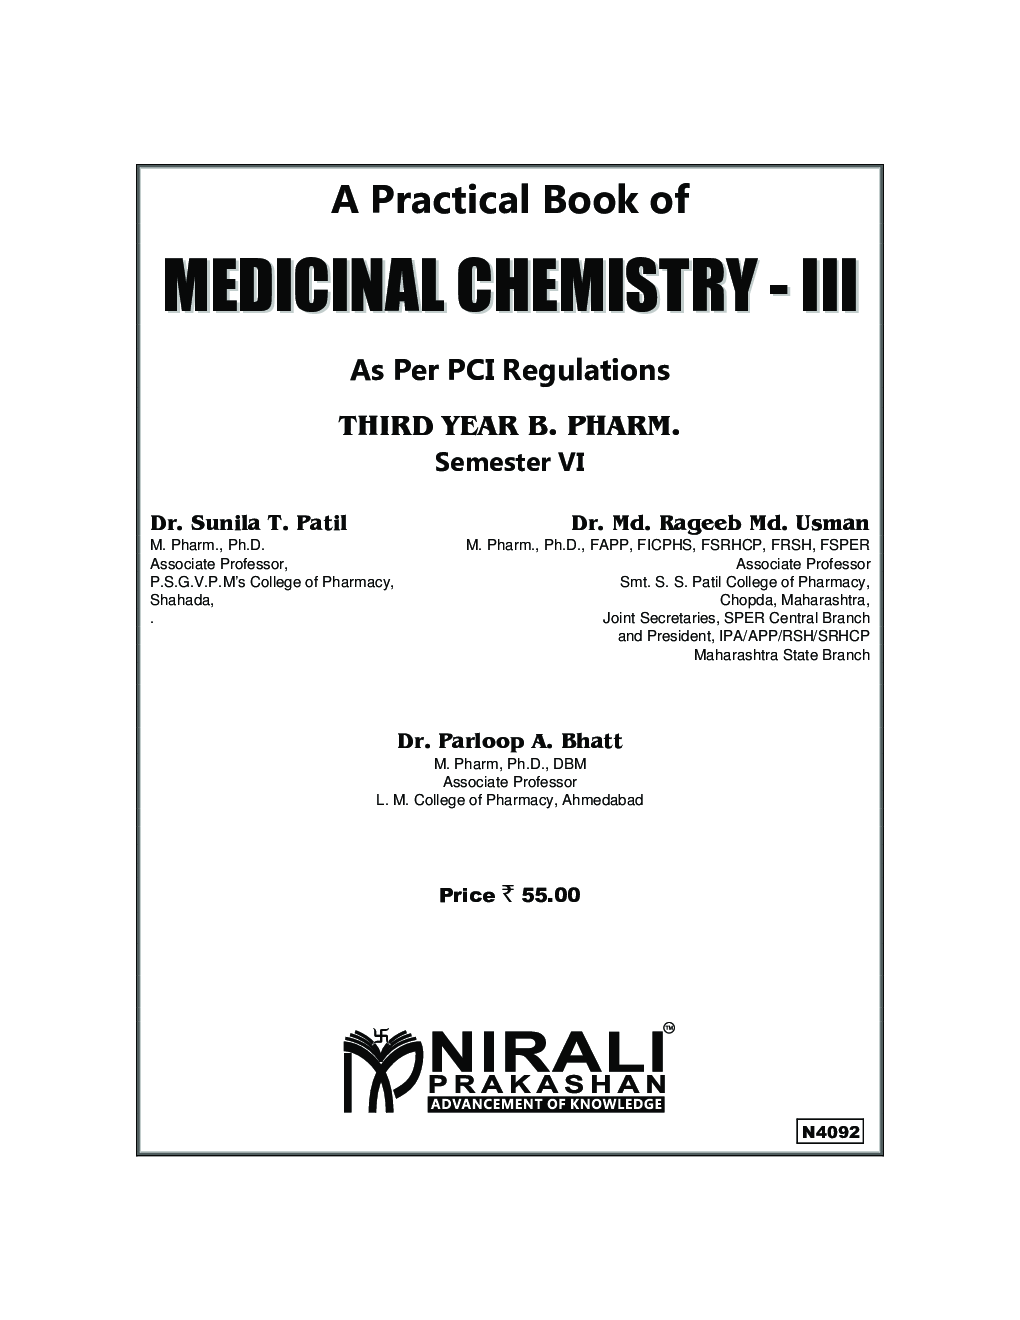 A Practical Book Of Medicinal Chemistry – III (Practical) - Page 2